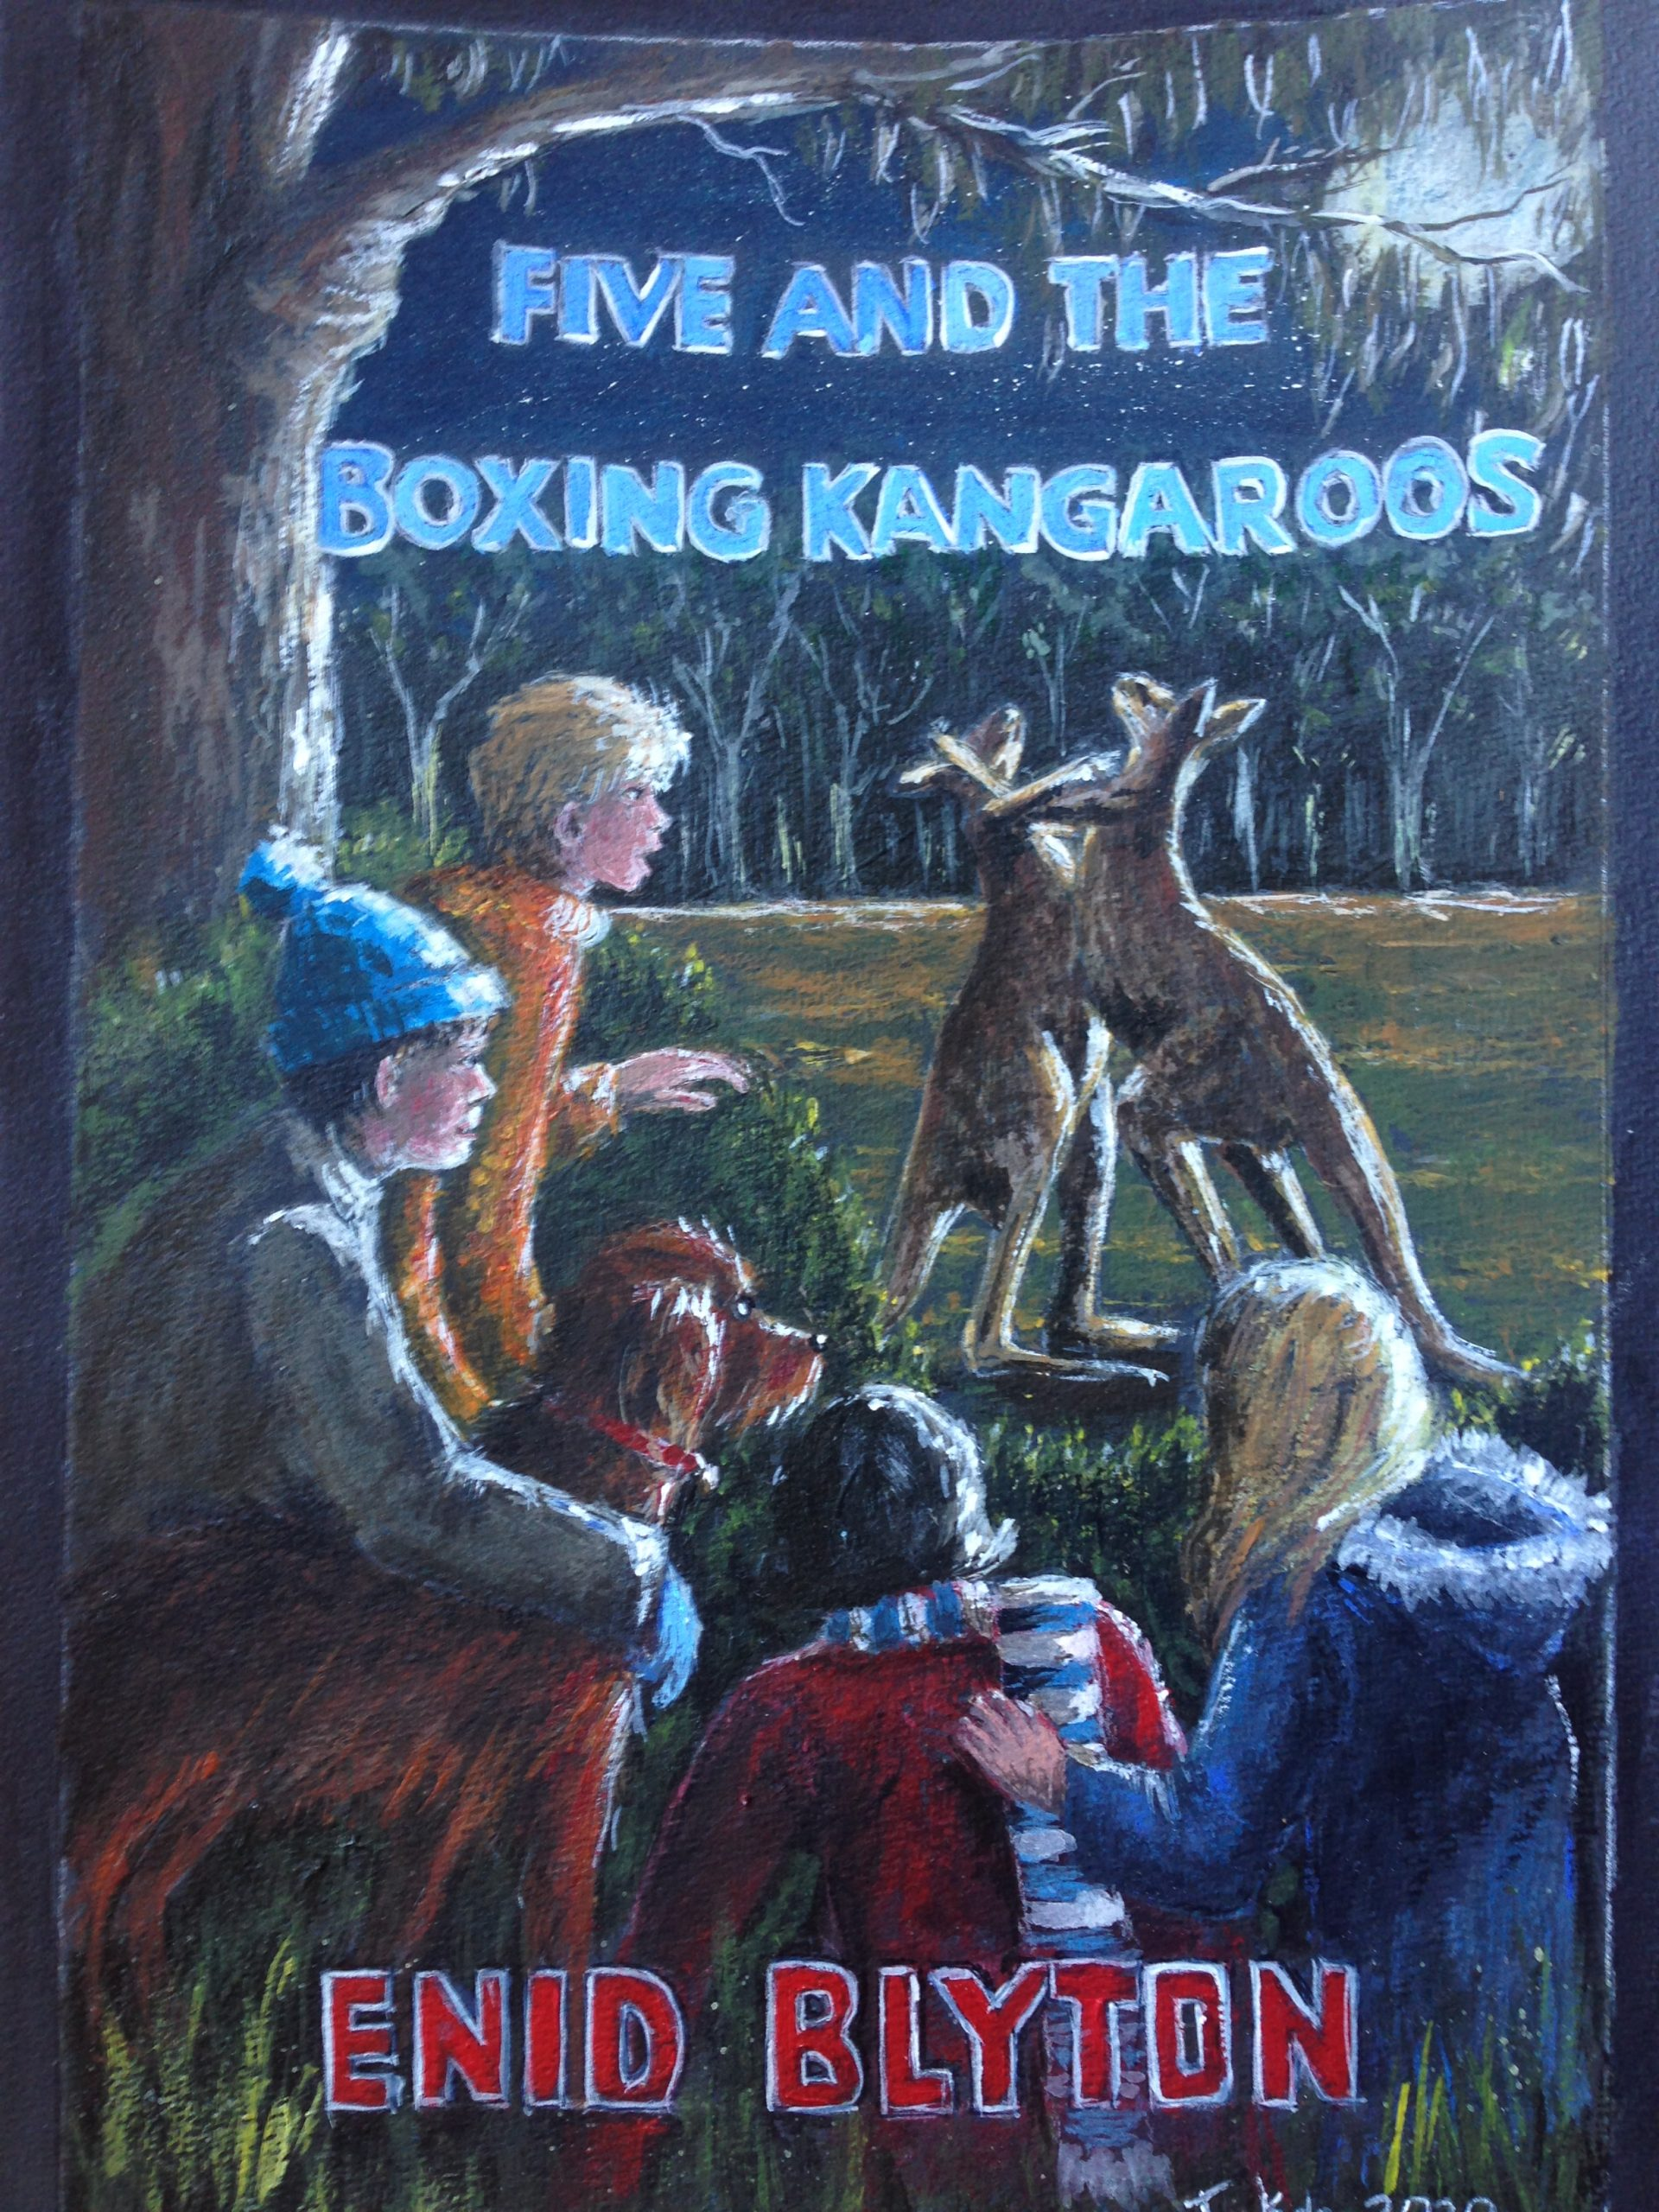 (160) Julie Kala - FiVE AND THE BOXING KANGAROOS Image